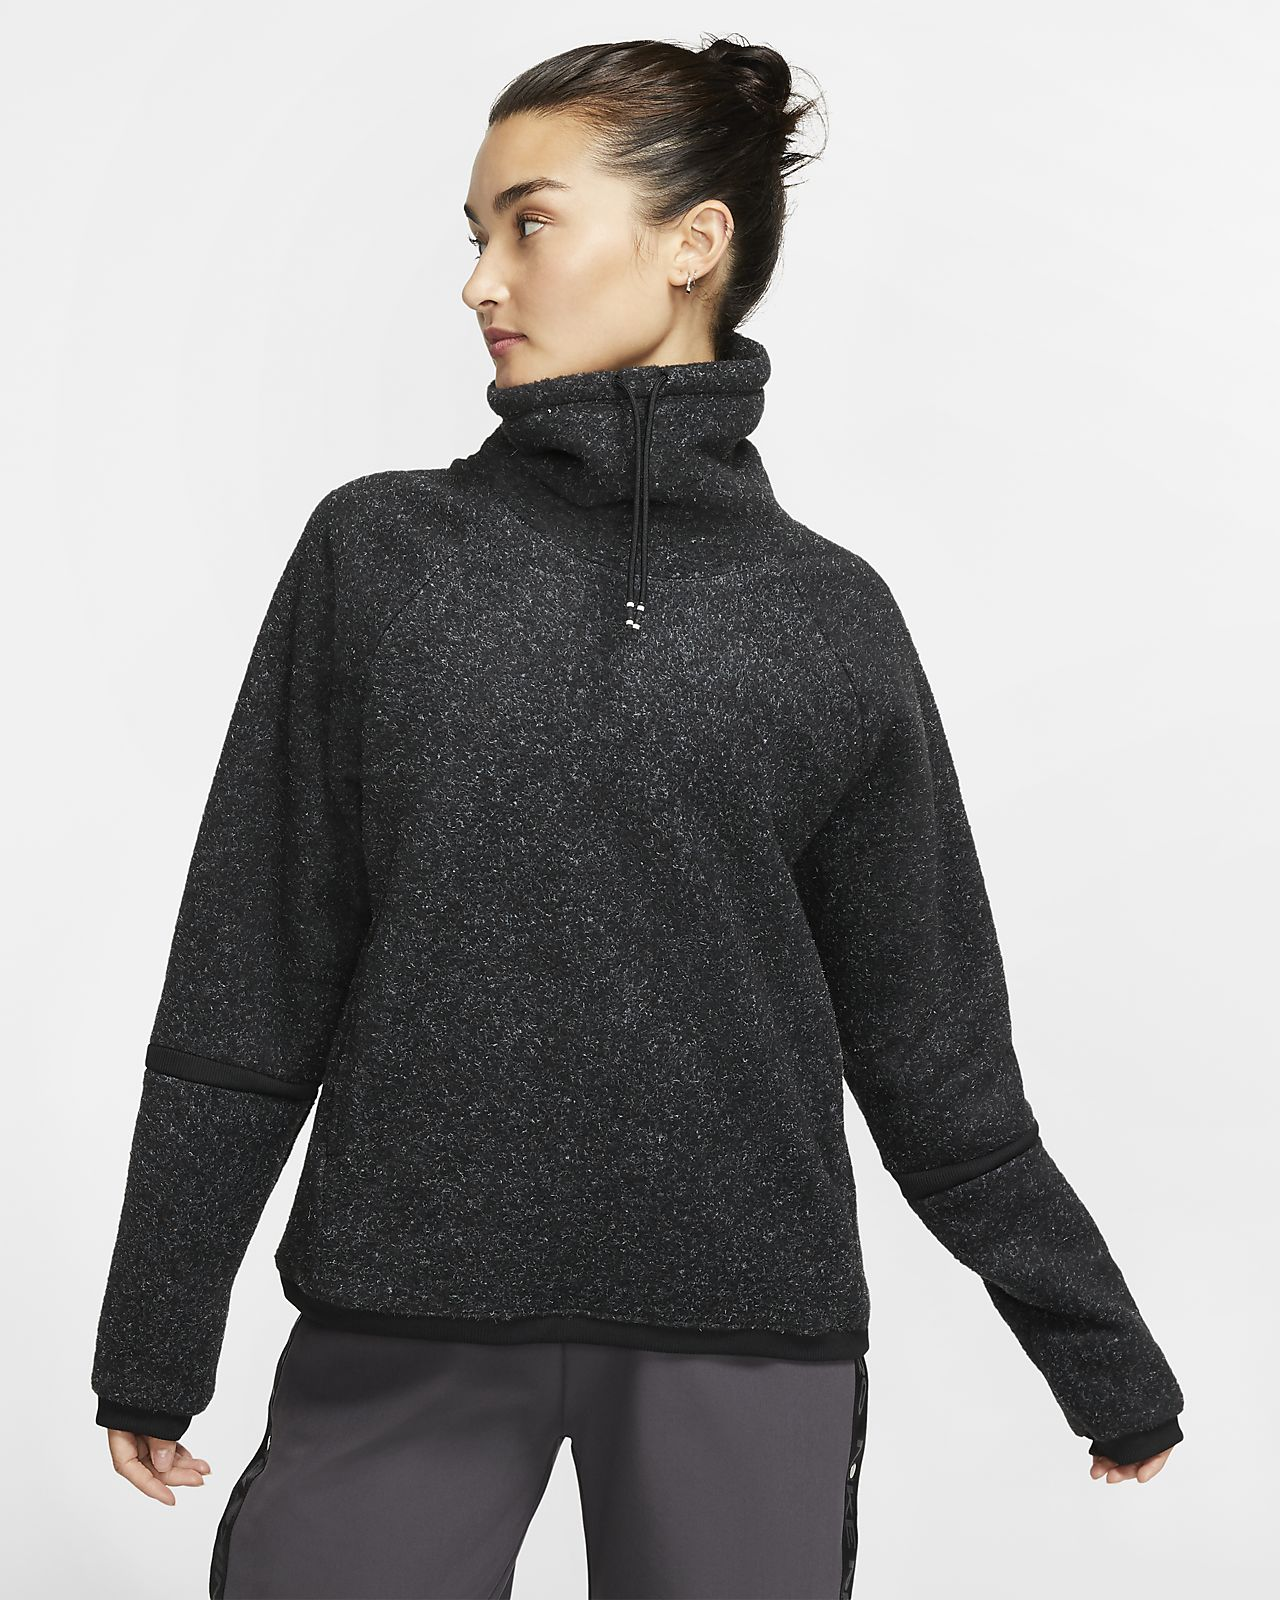 Nike Therma Langarm-Fleece-Trainingsoberteil für Damen